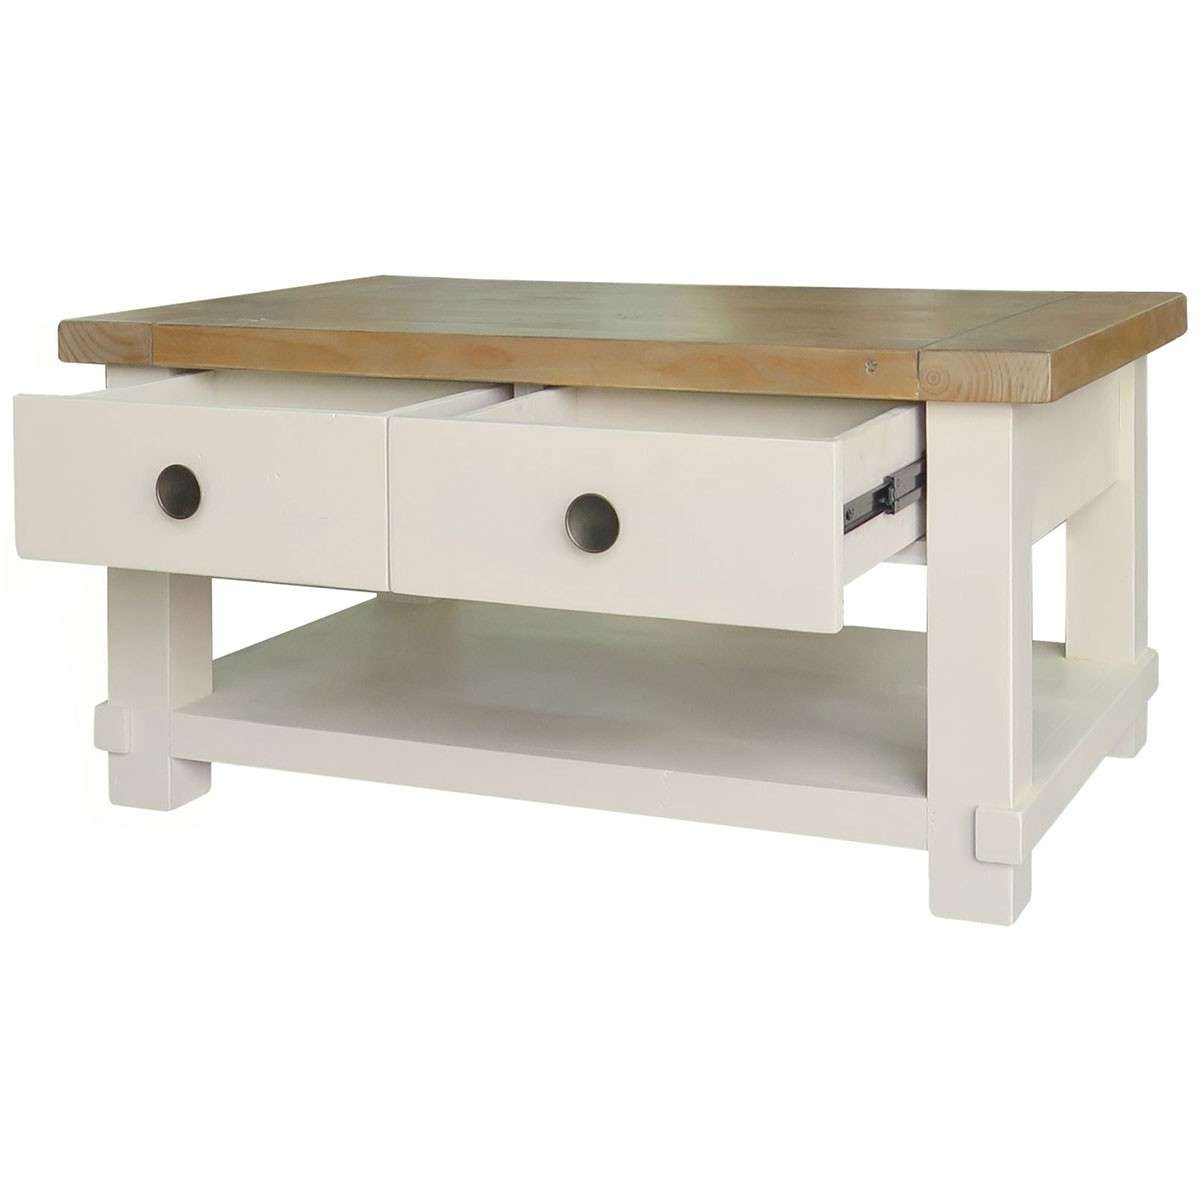 Coffee Table : Adorable Cream Coffee Table With Drawers Garden For Well Known Cream Coffee Tables With Drawers (View 19 of 20)